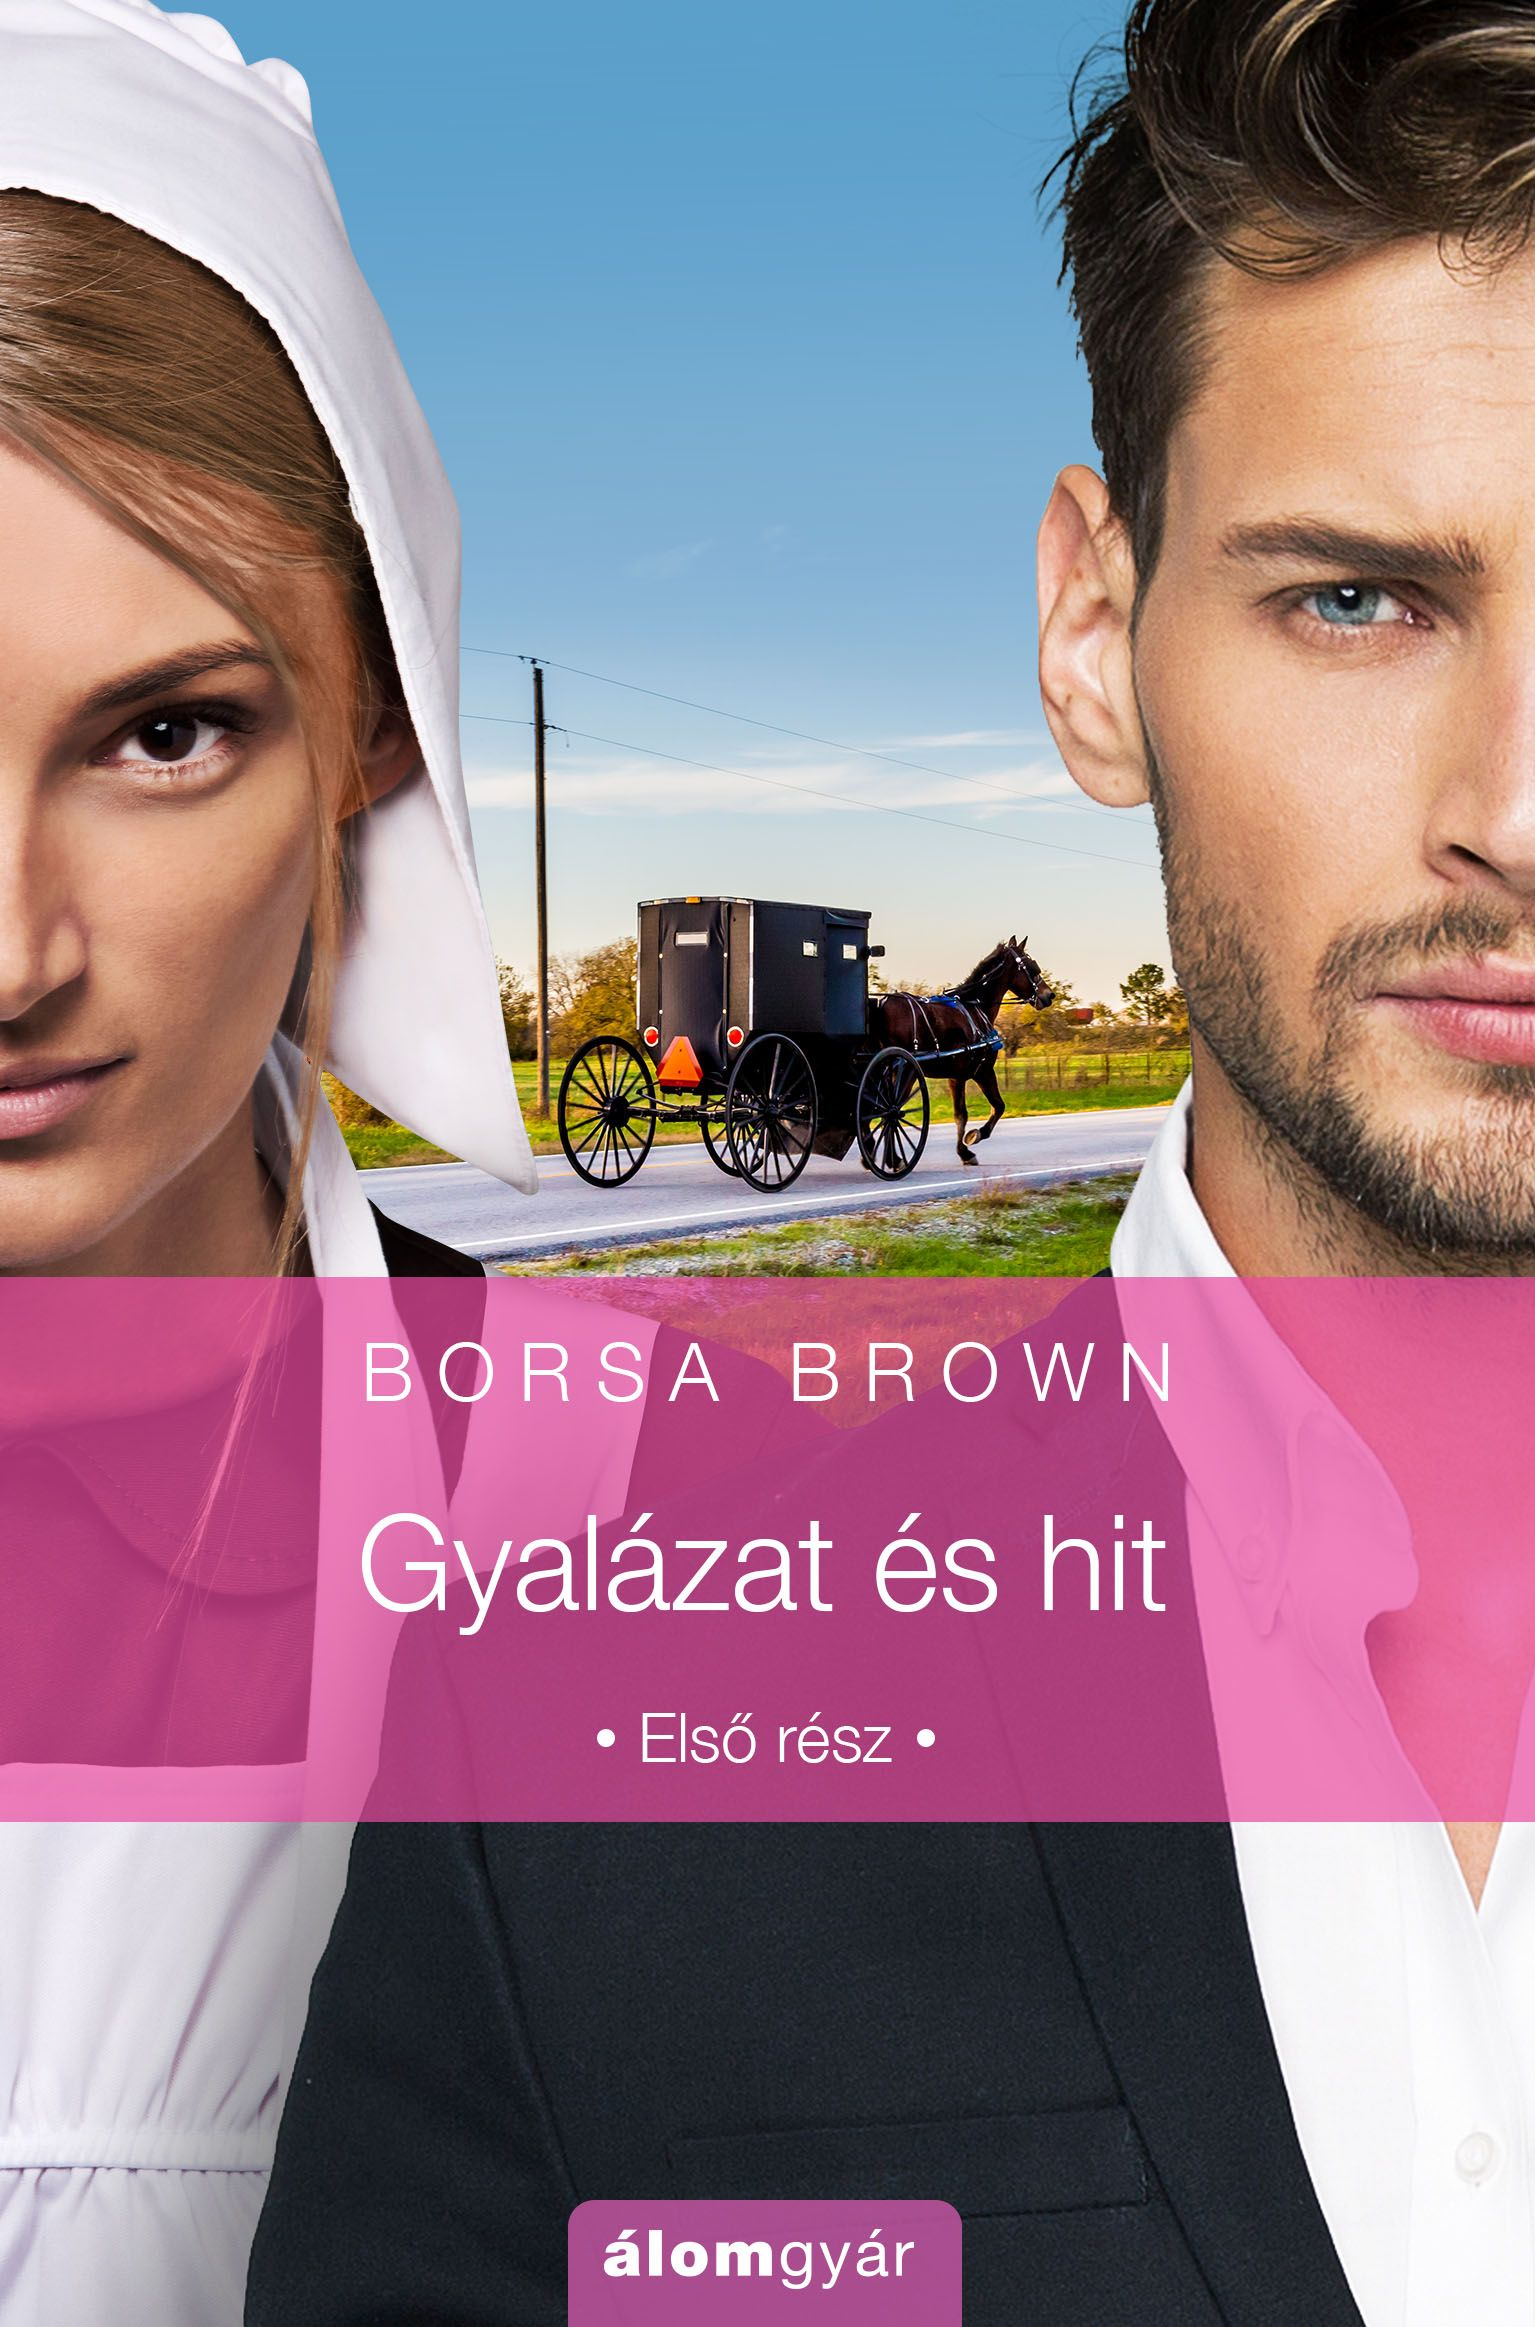 Borsa Brown Gyalazat Es Hit Book Week Books Ebook